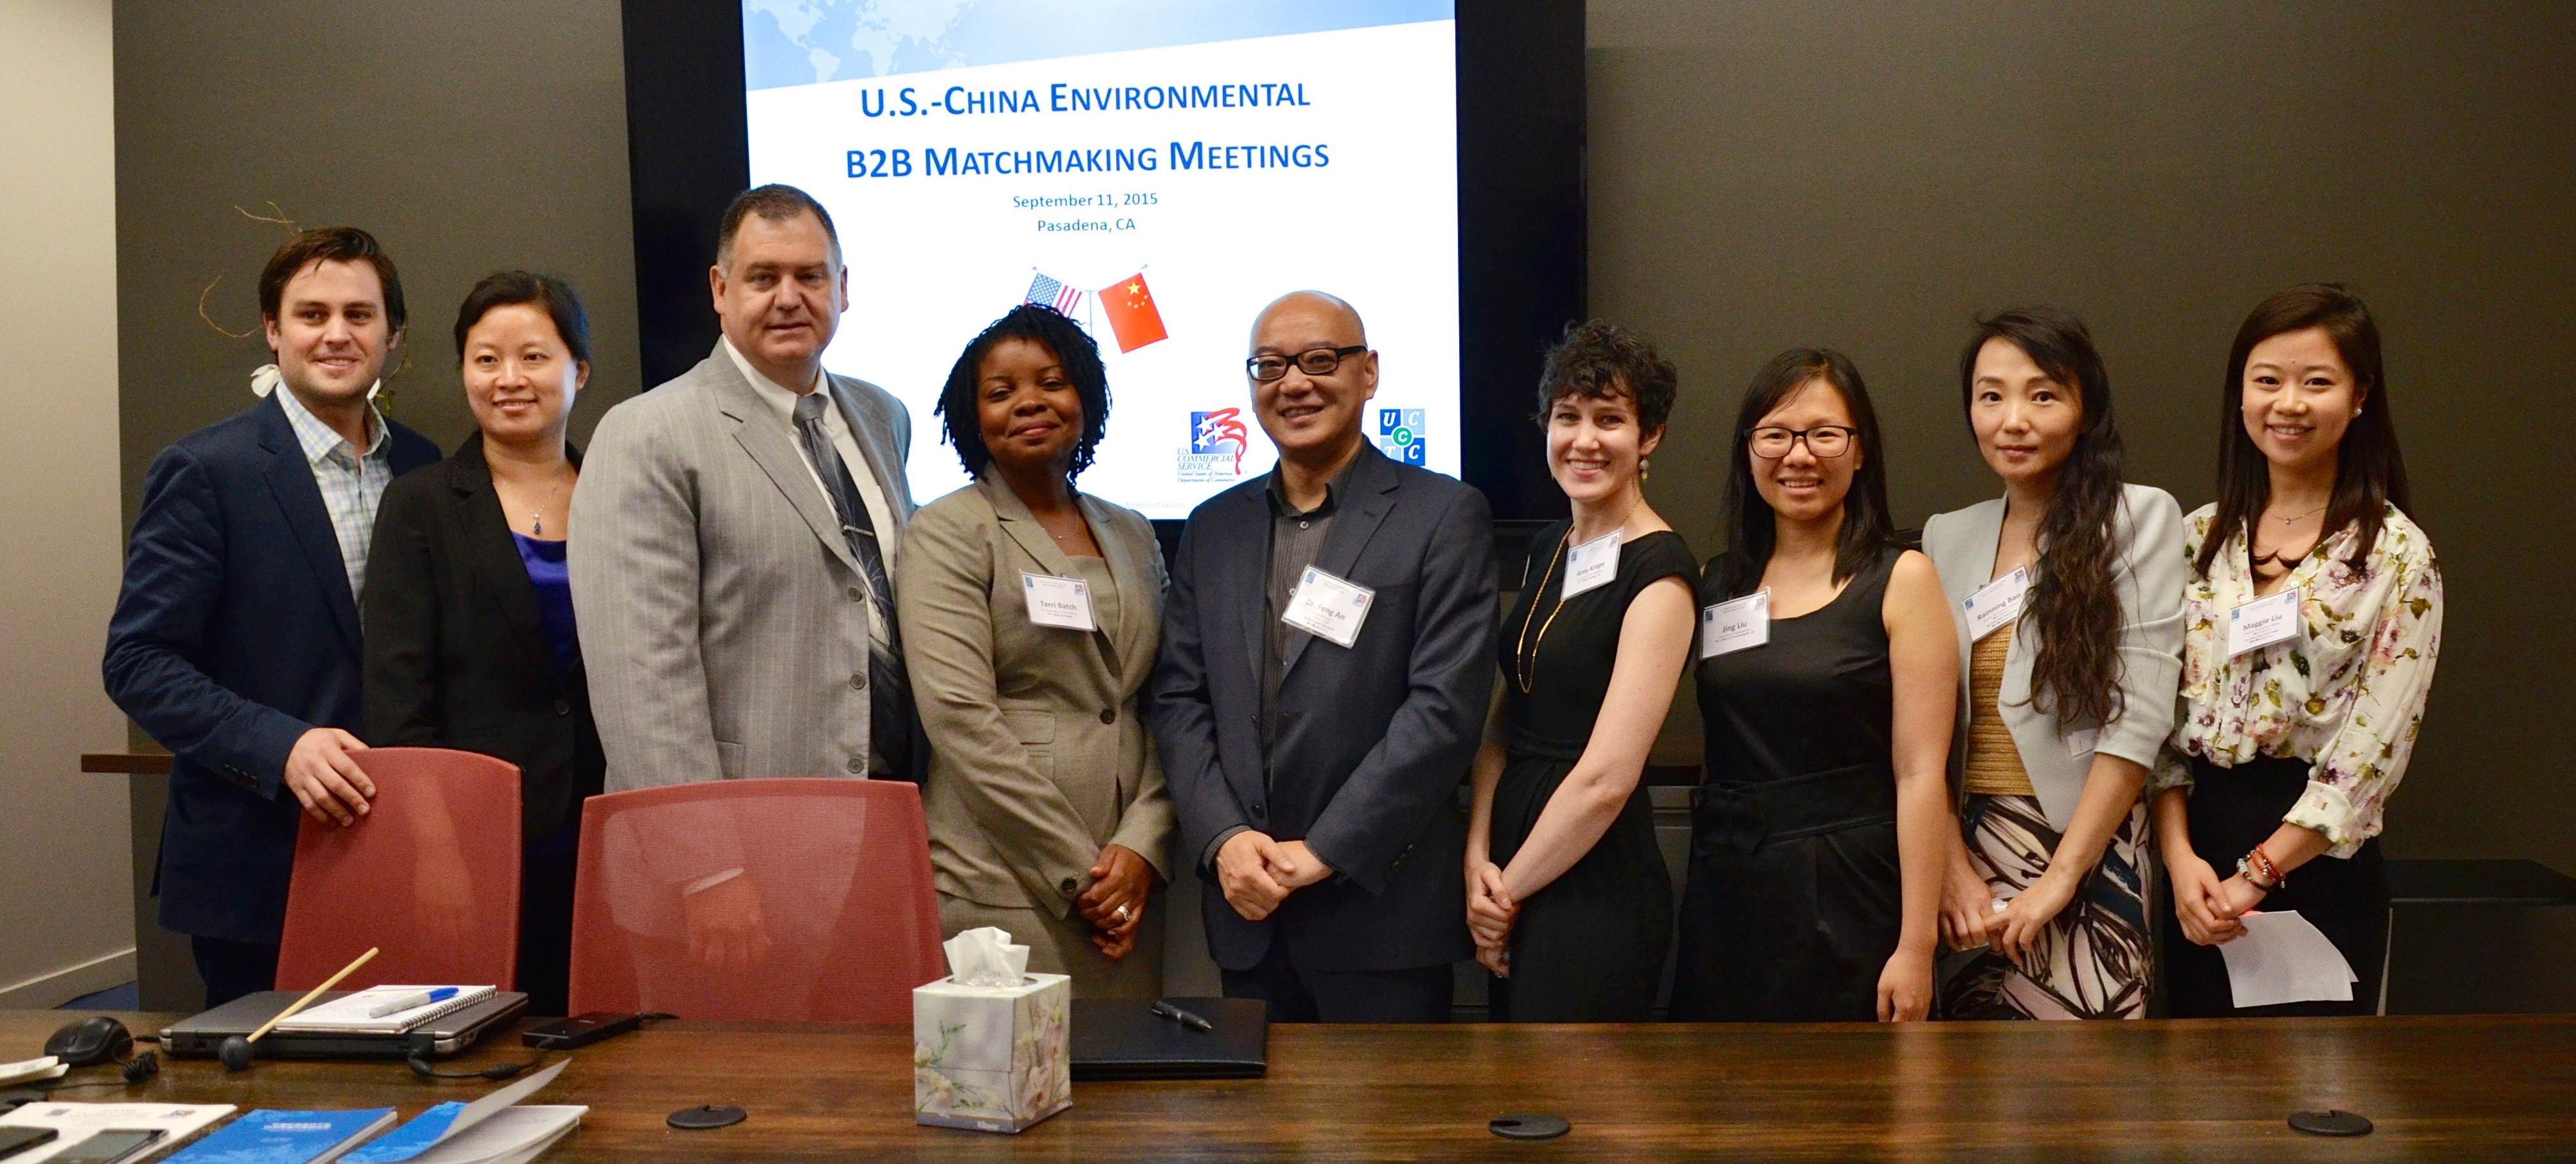 SINO-U.S. Environmental Industry CEO B2B Event